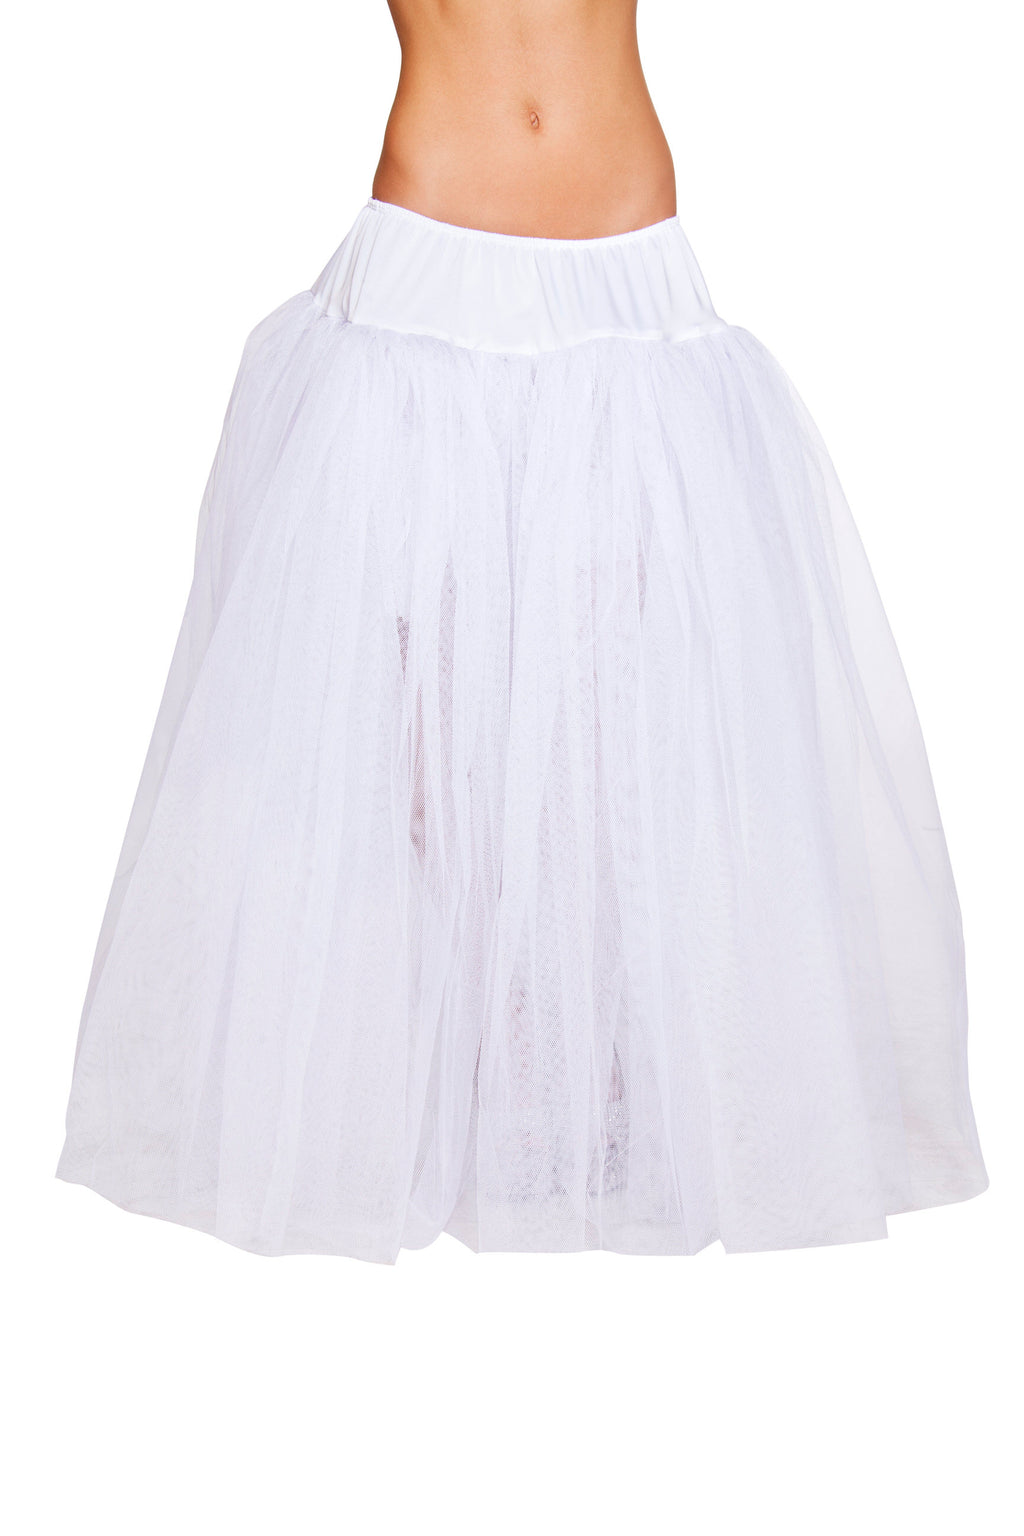 Adult-Women's-Full-Length-White-Petticoat-Halloween-Party-Costume-Accessory